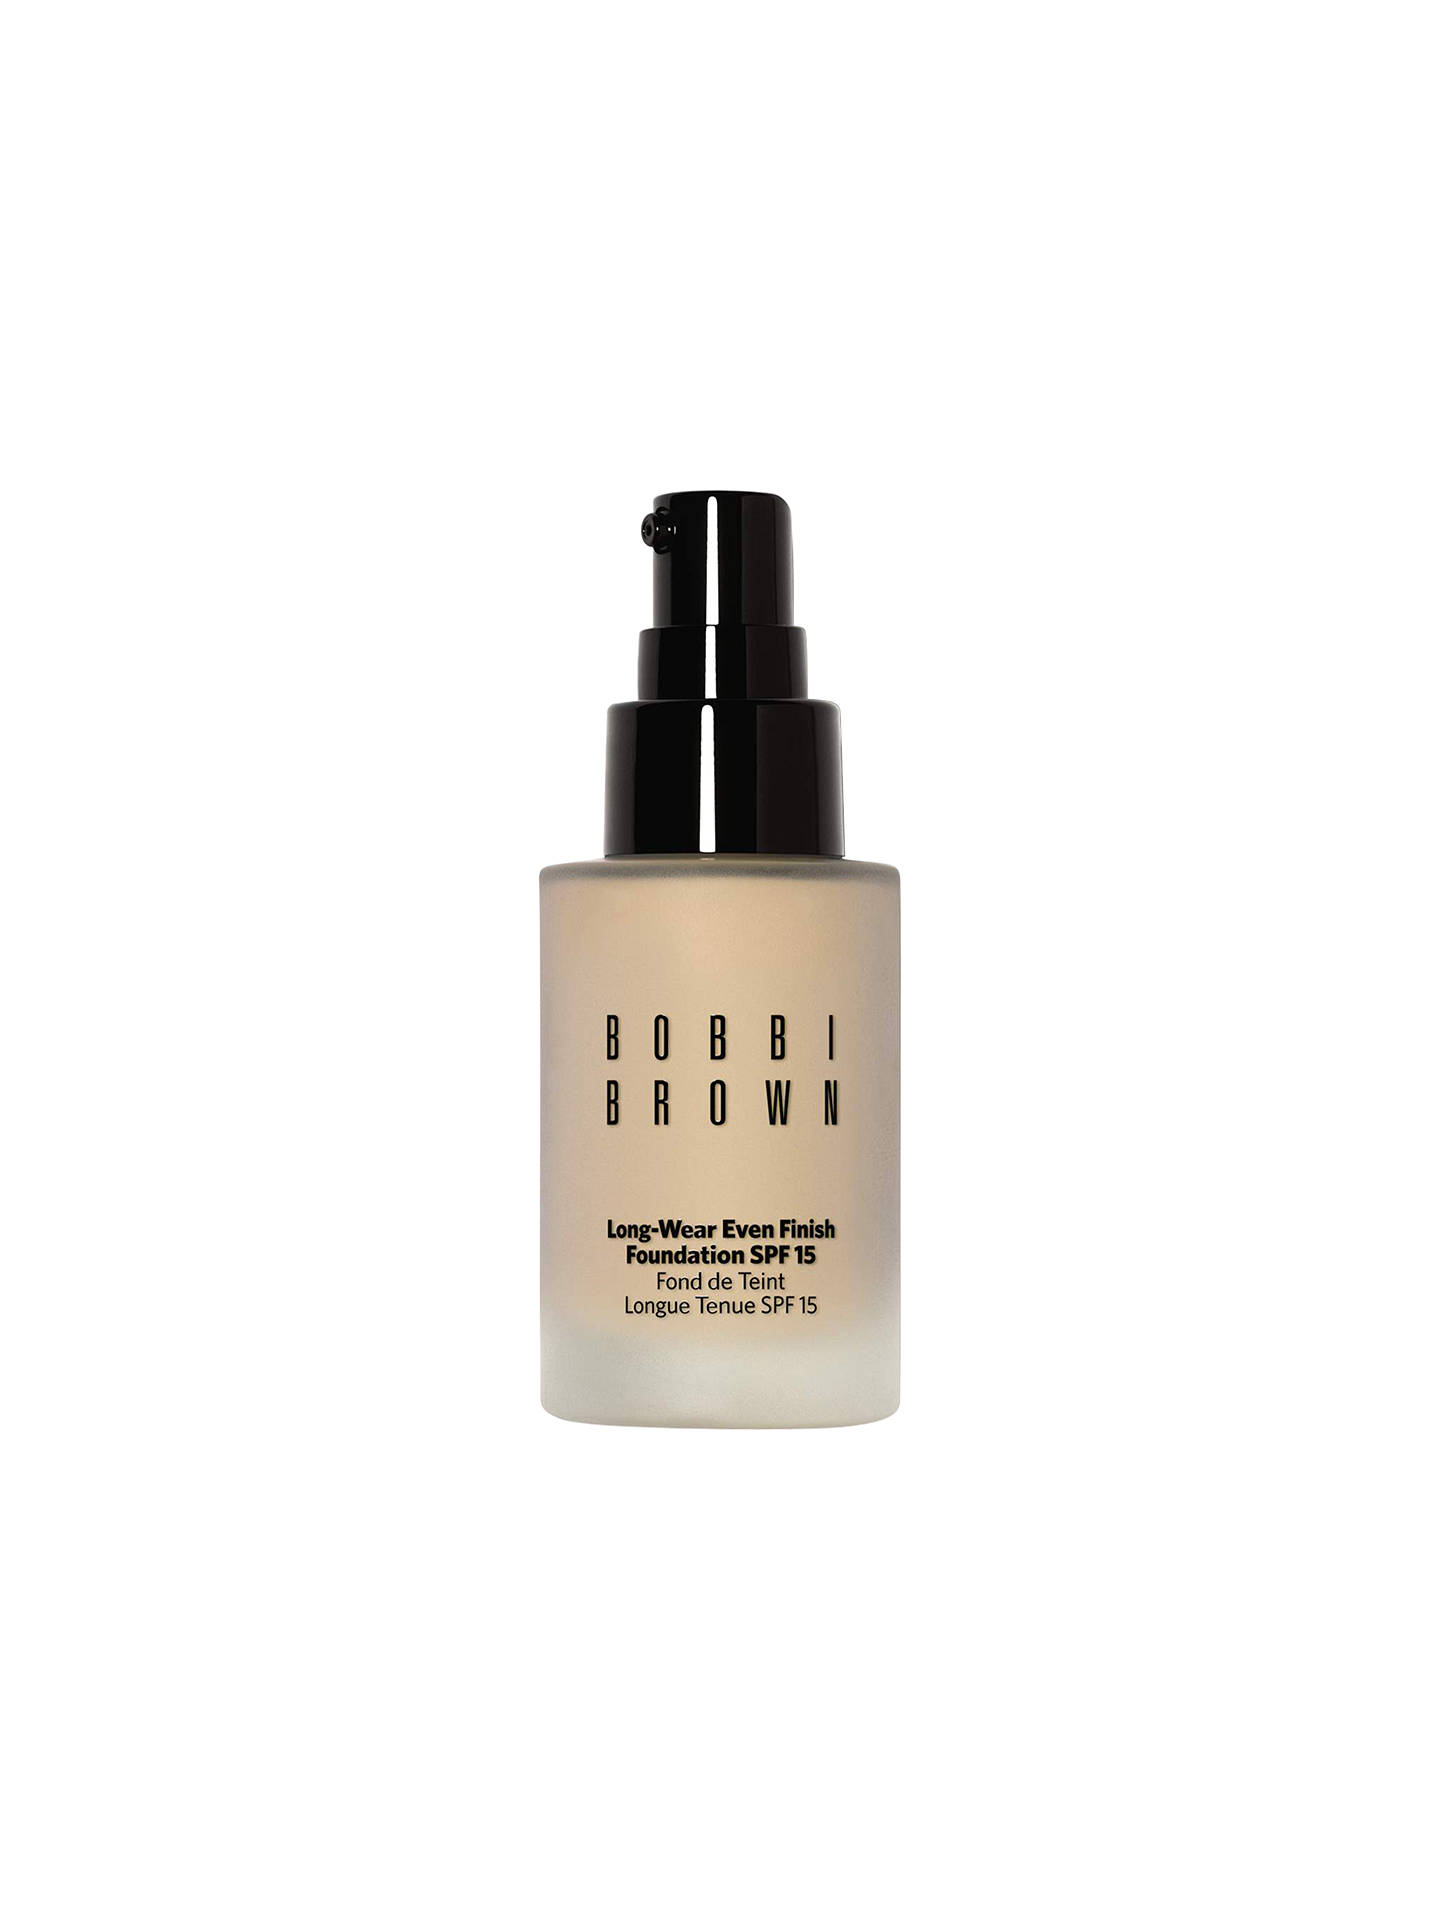 Buy Bobbi Brown Long-Wear Even Finish Foundation SPF 15, Warm Beige Online at johnlewis.com